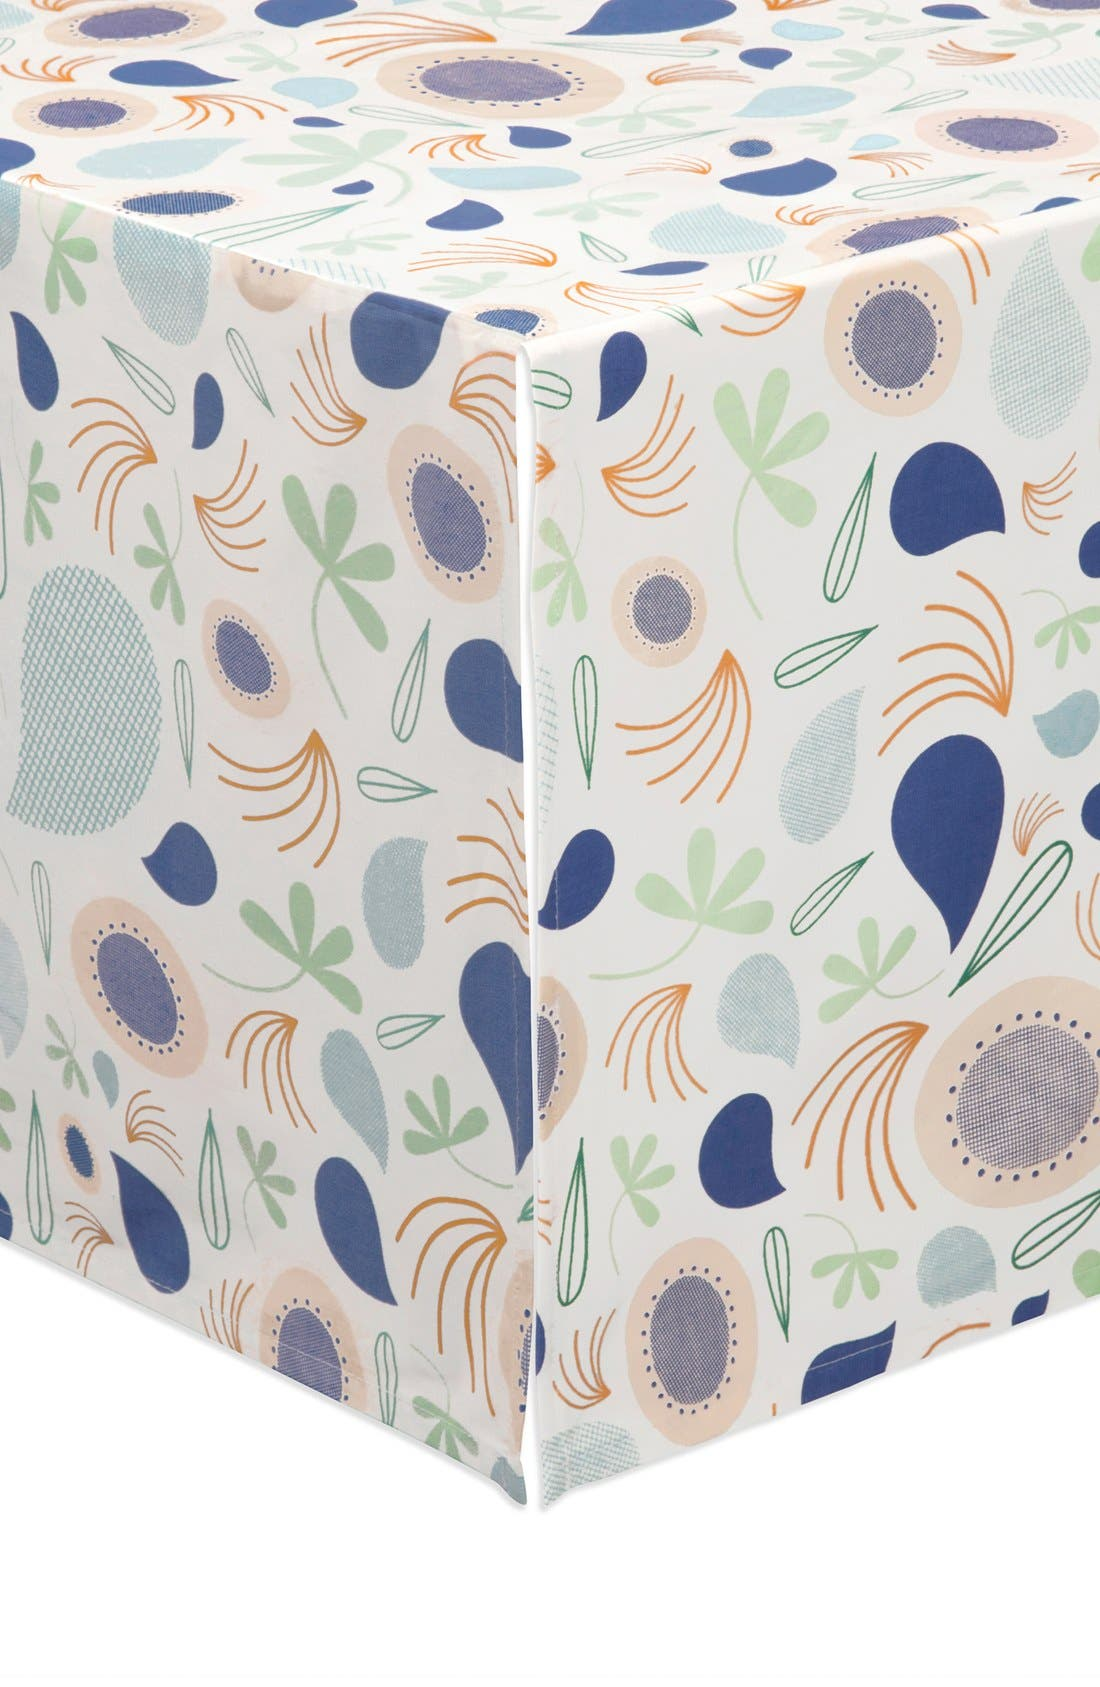 'Flora' Crib Sheet, Crib Skirt, Changing Pad Cover, Blanket & Wall Decals,                             Alternate thumbnail 8, color,                             Blue